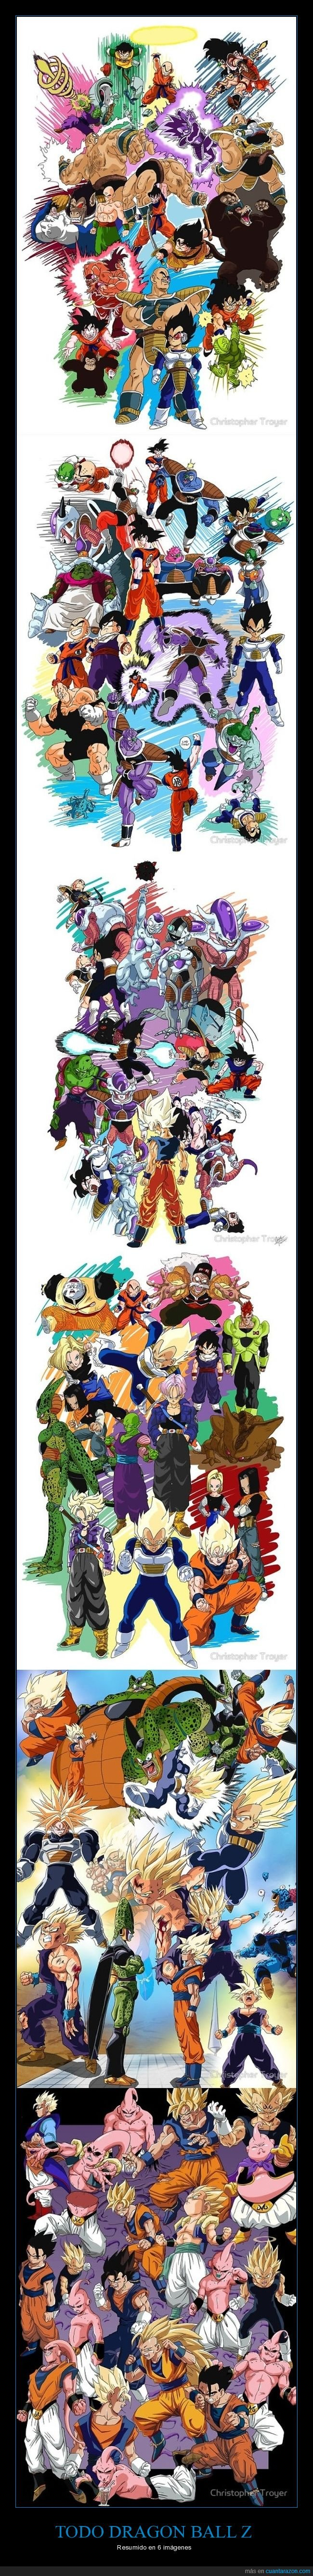 dragon ball,resumen